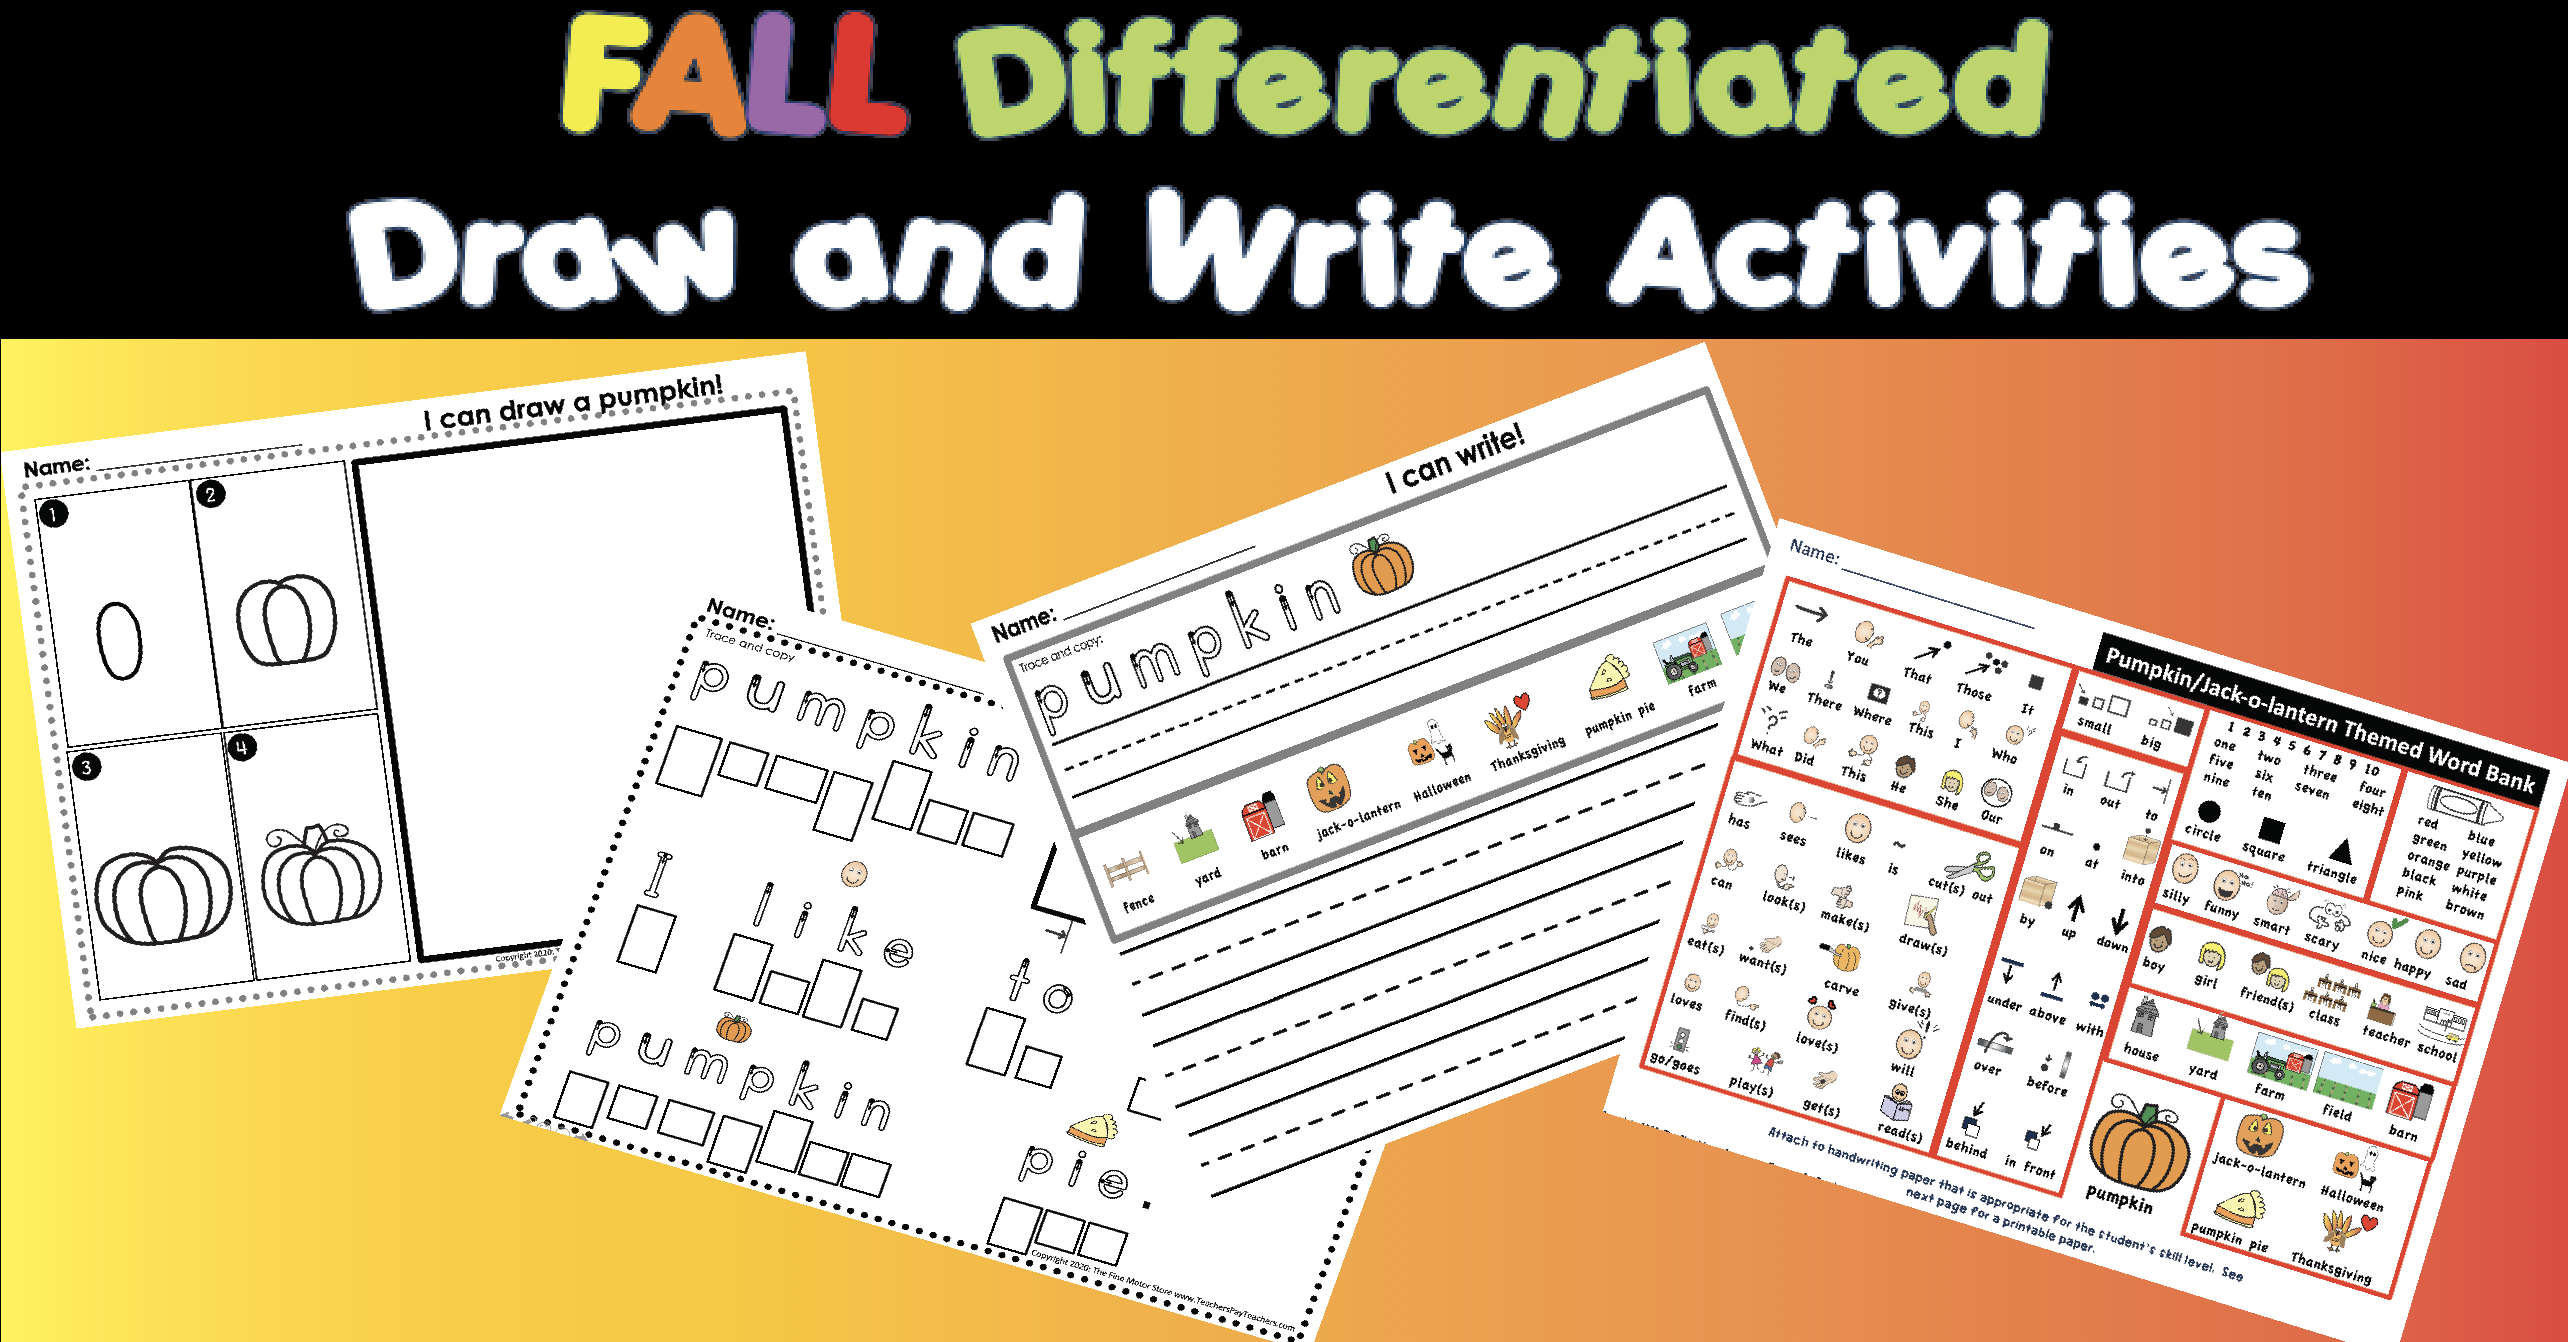 NEW PRODUCT ALERT! 50% OFF 24 hours.  FALL THEMEDDirected Draw and Differentiated Writing Activities for Kindergarten First Grade Special Education and Occupational Therapy